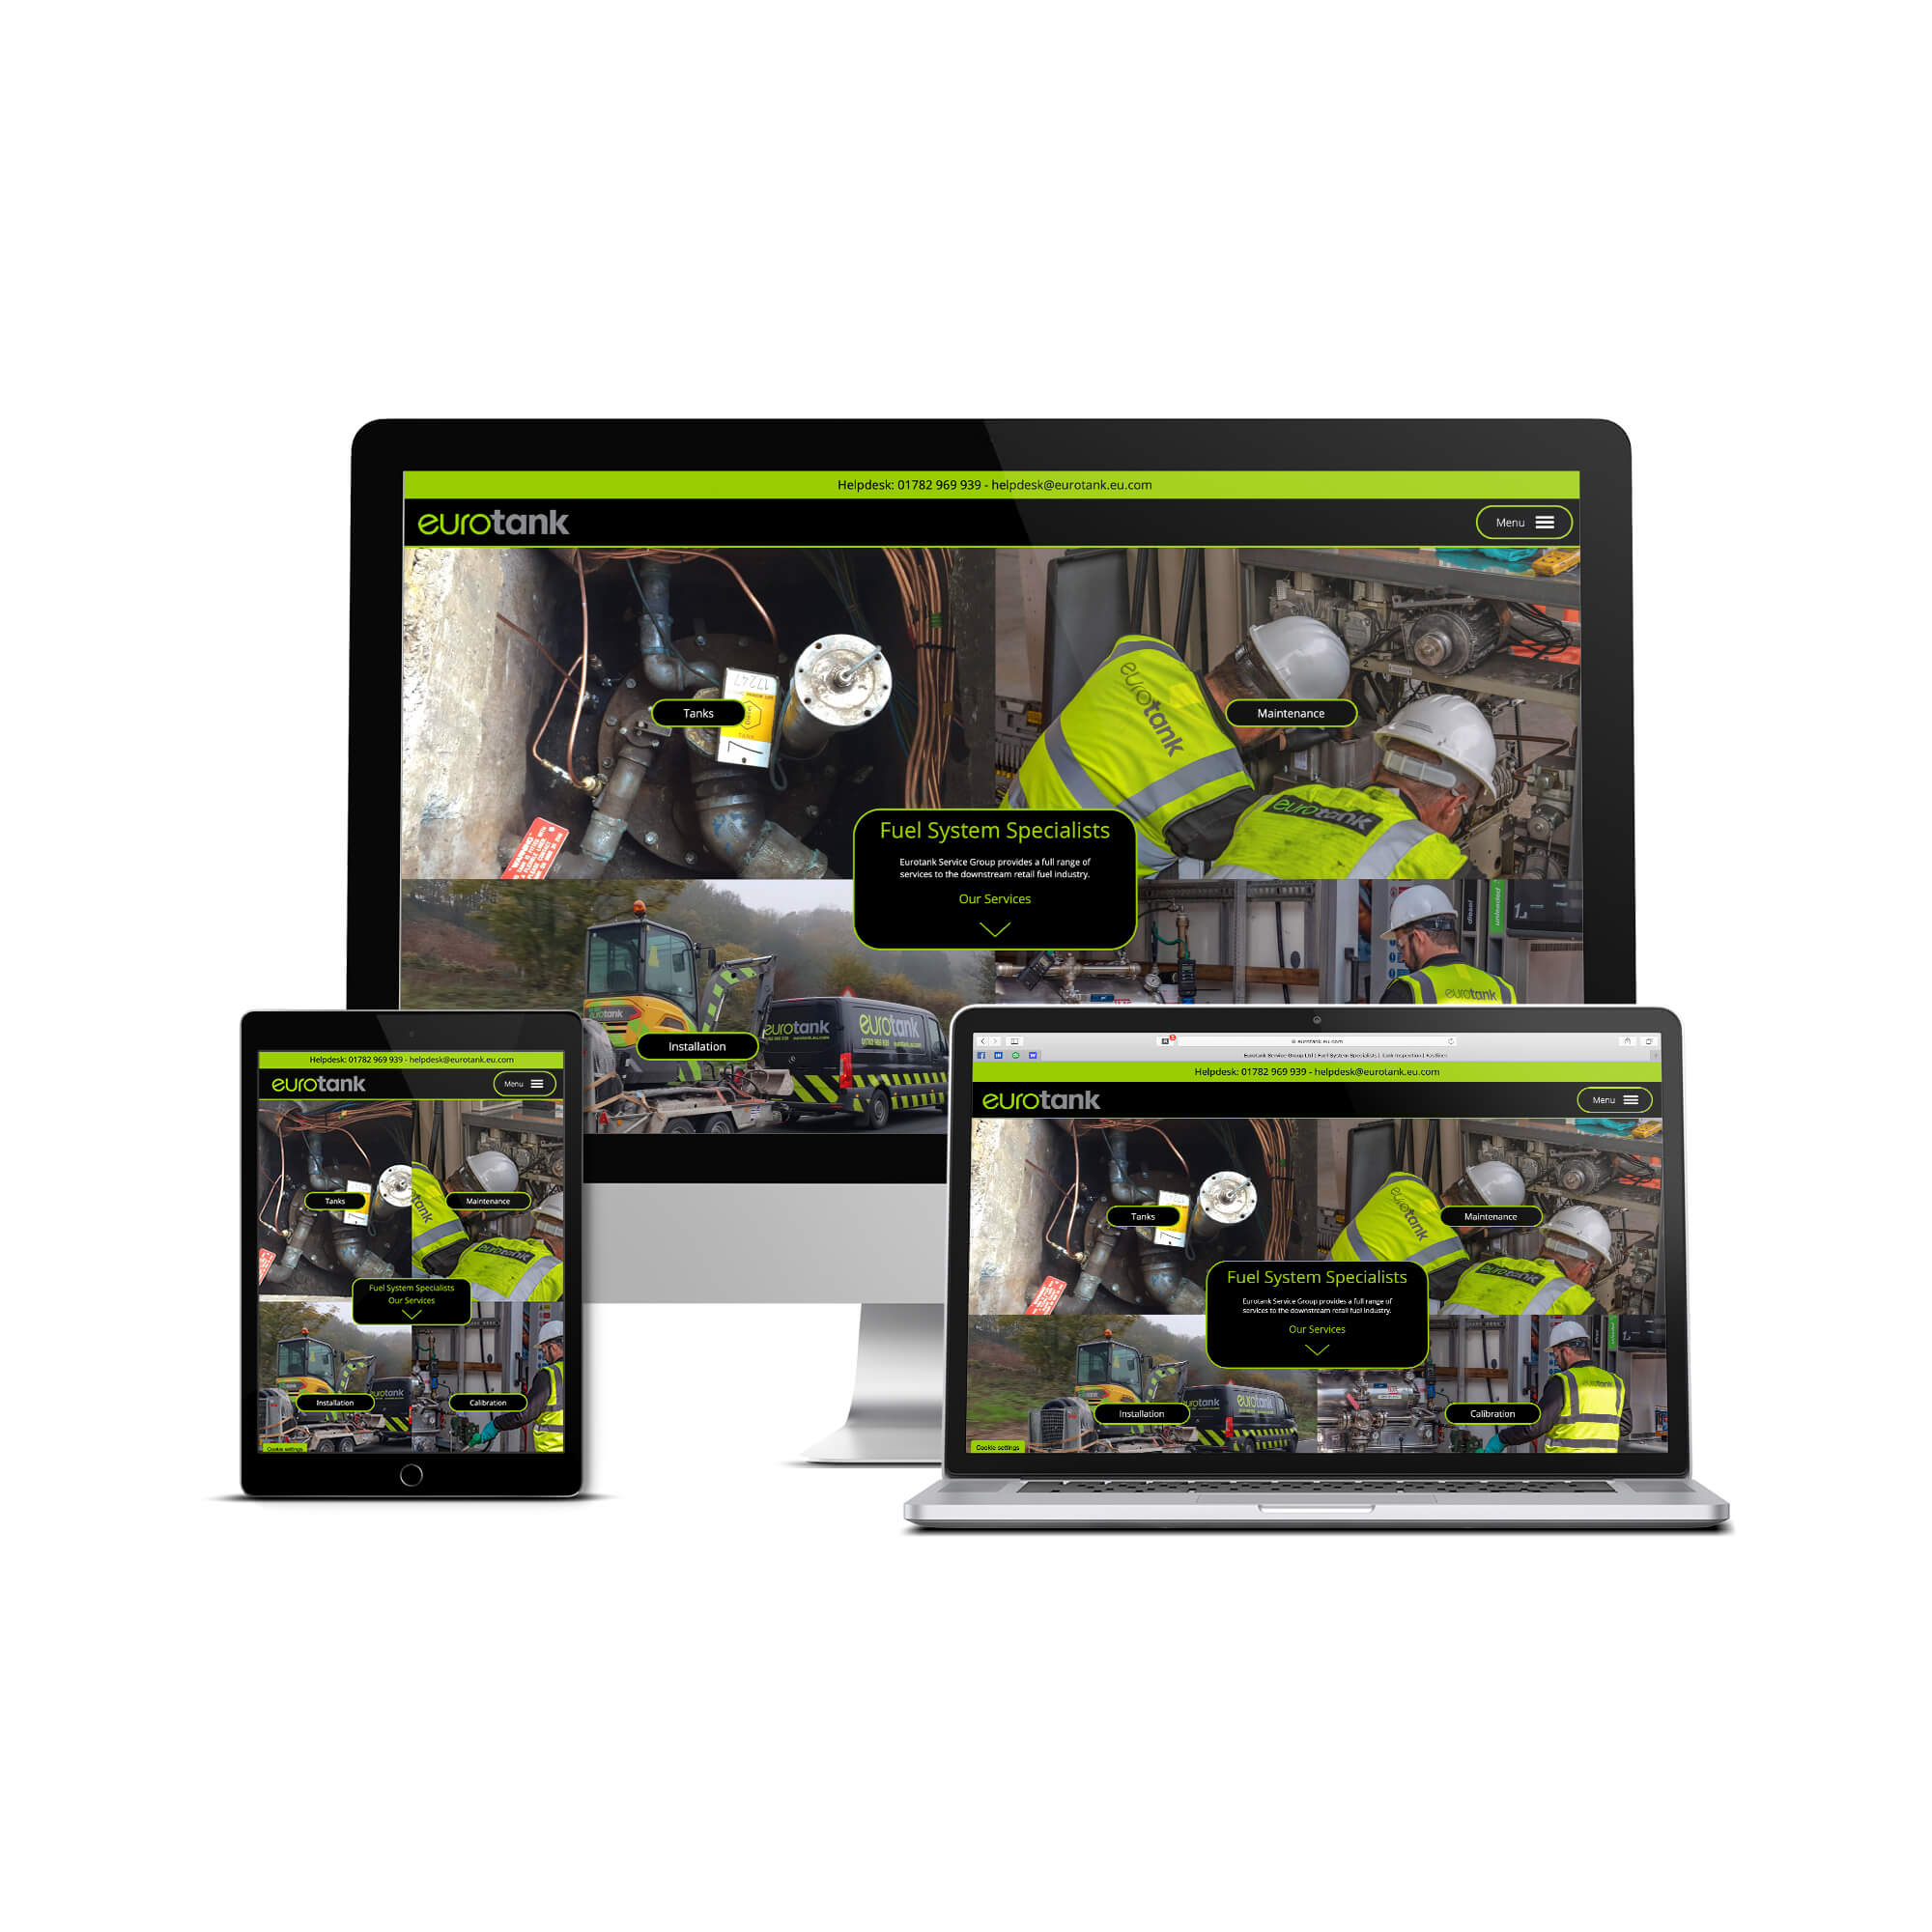 Eurotank Service Group Website design